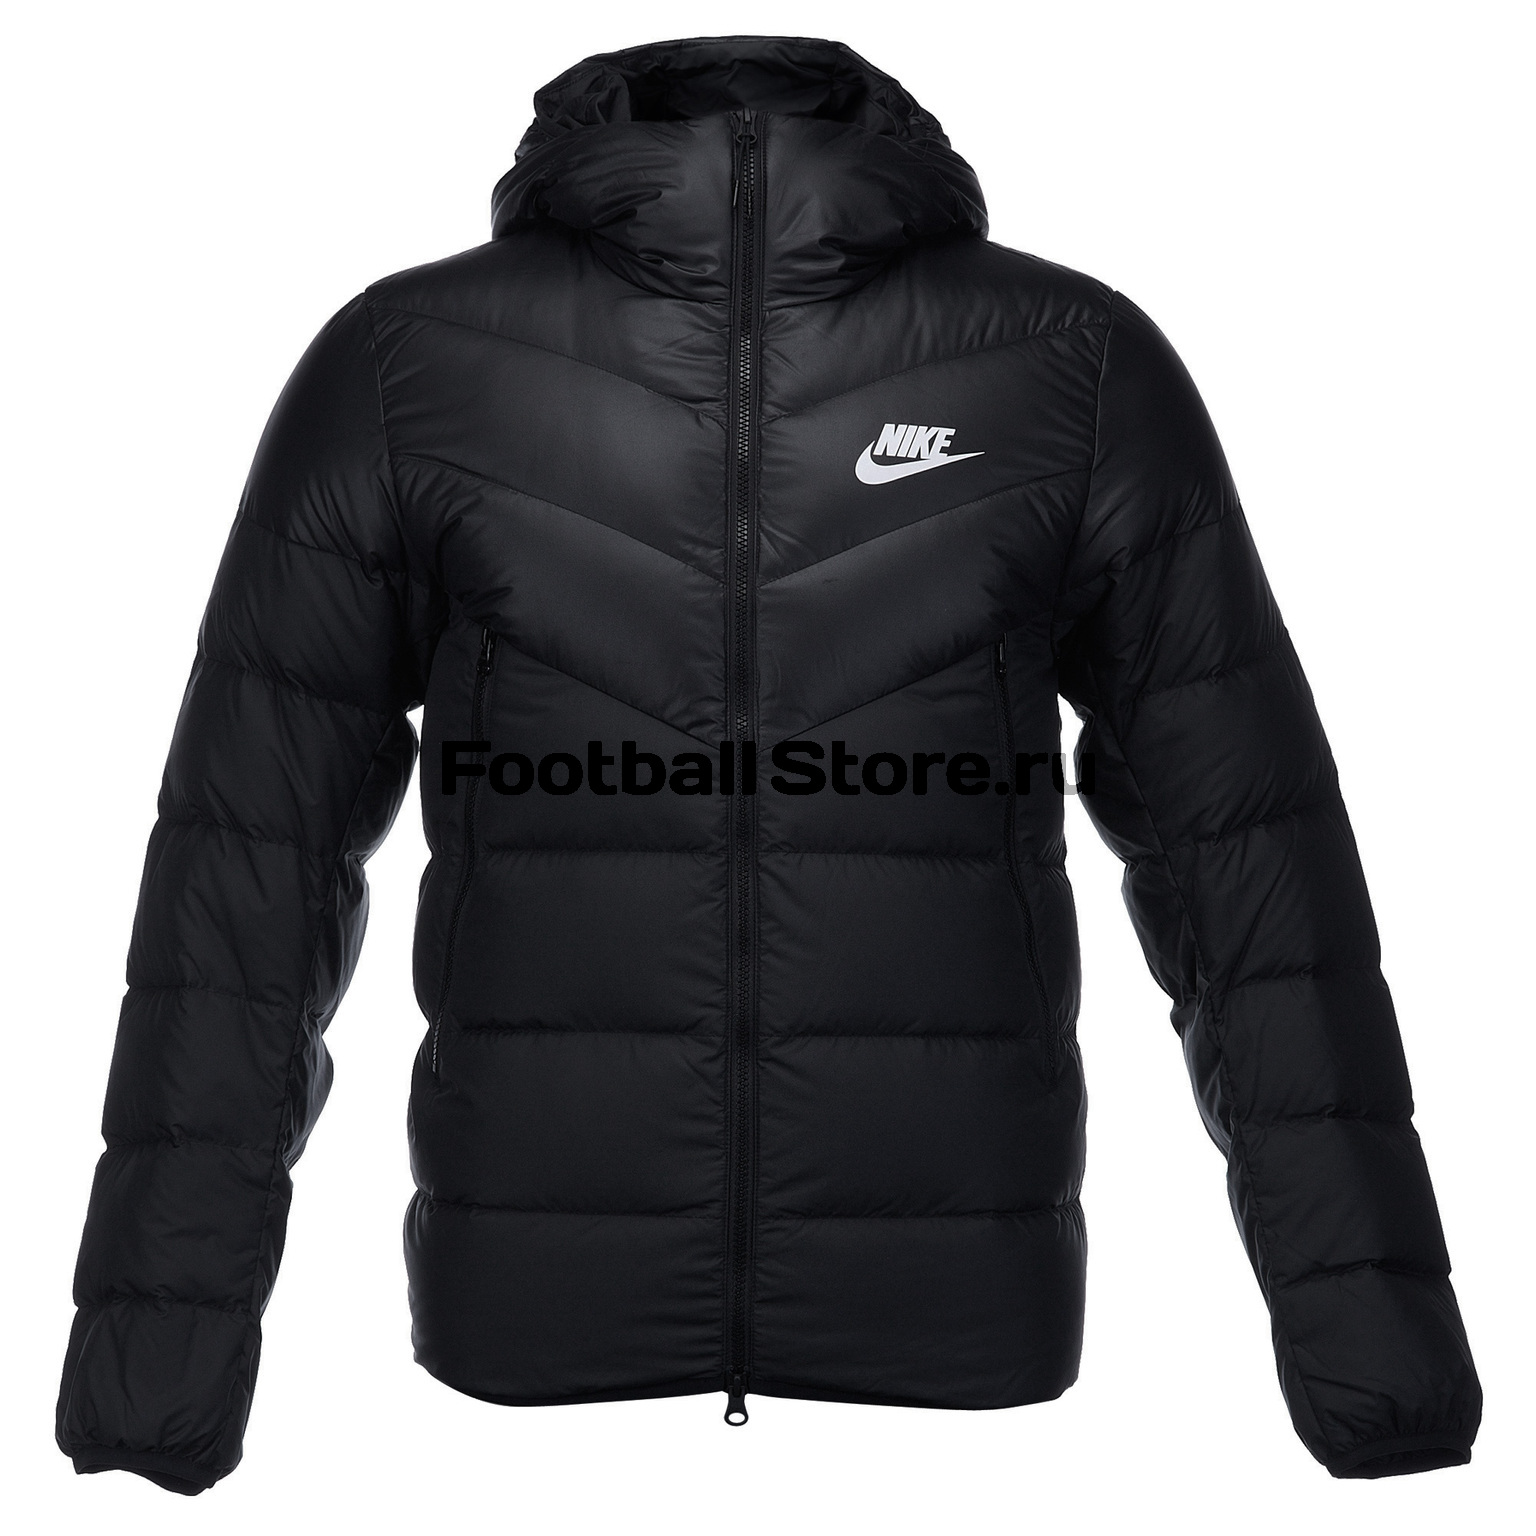 Куртка Nike Windrunner JKT 928833-010 куртка nike team winter jkt 645484 010